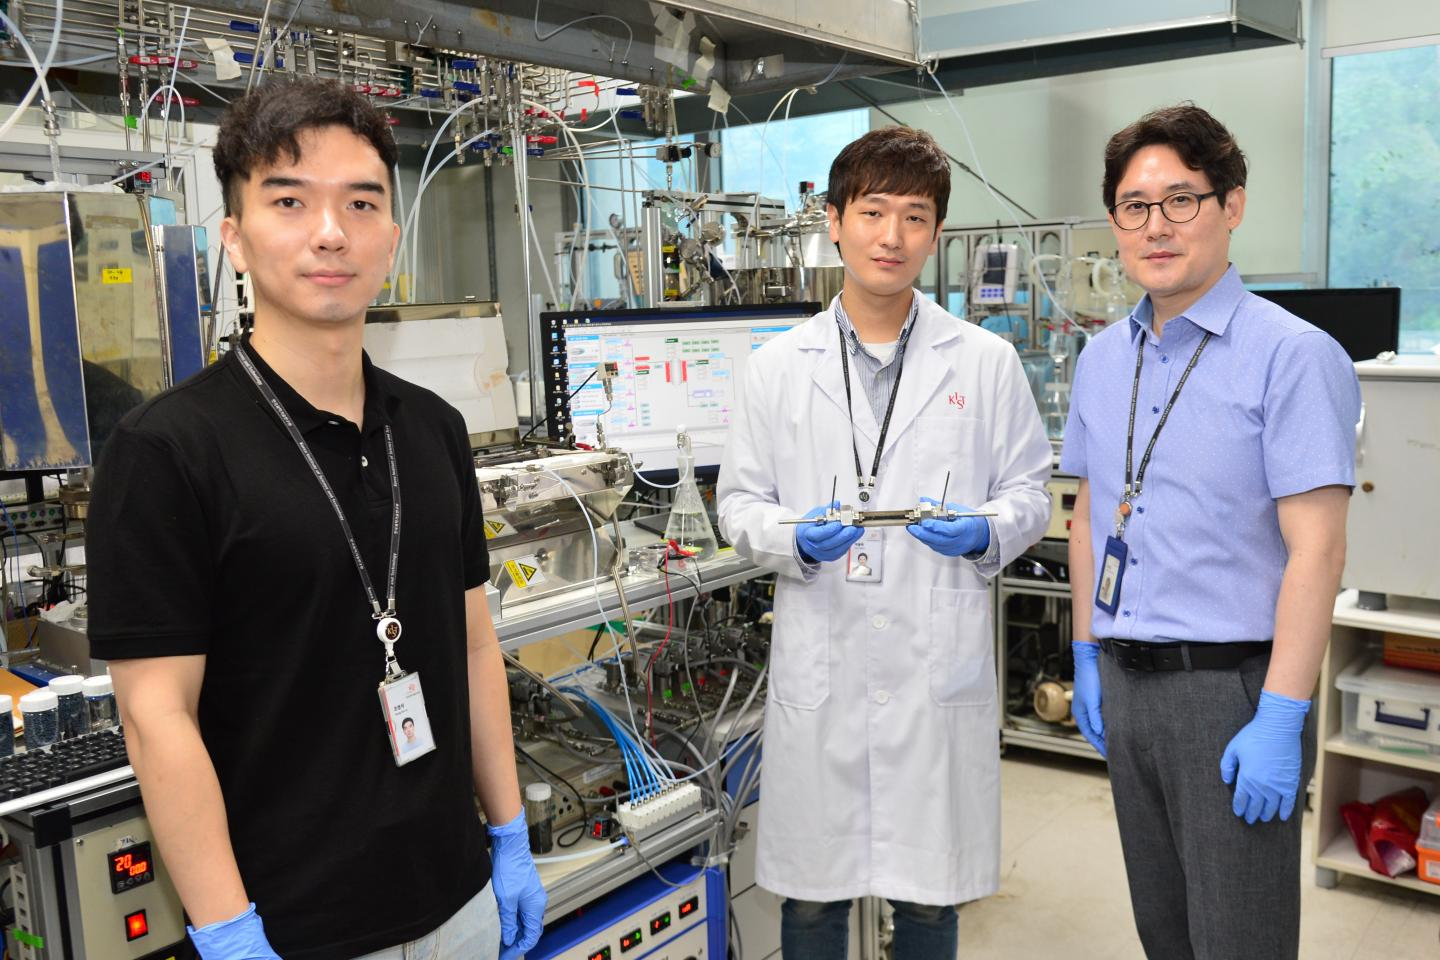 KIST Researchers Who Developed This High Purity Hydrogen Extractor